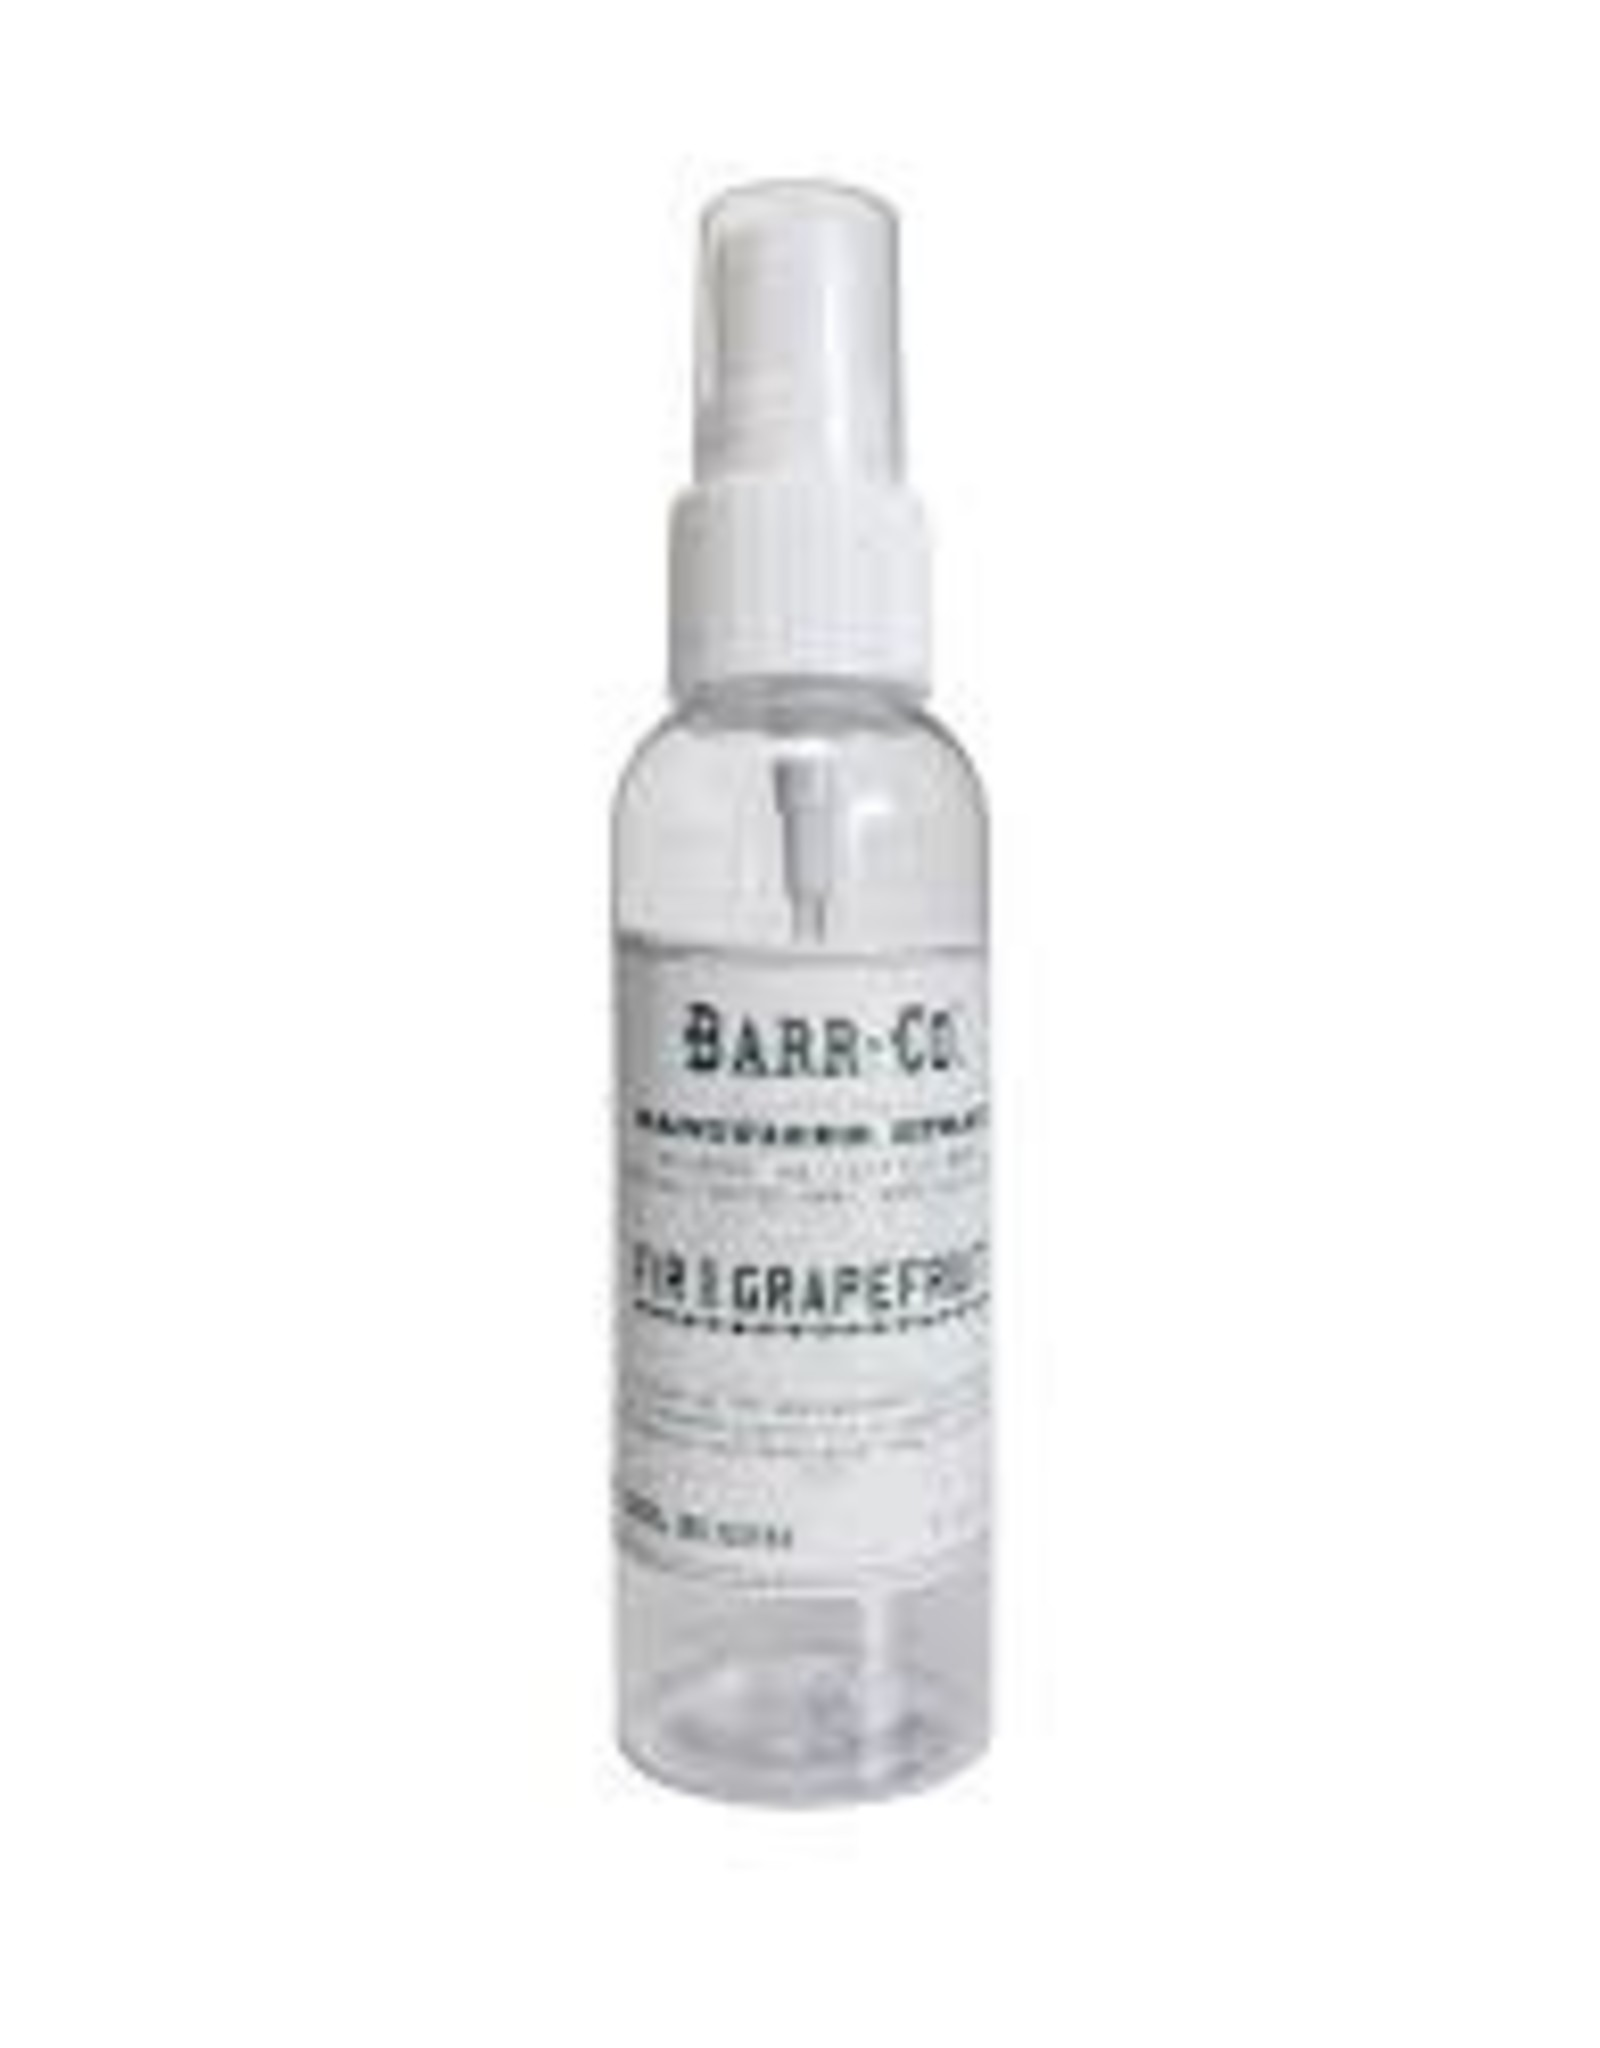 Barr-Co. Barr-Co. Sanitizer Spray 2oz Original Scent